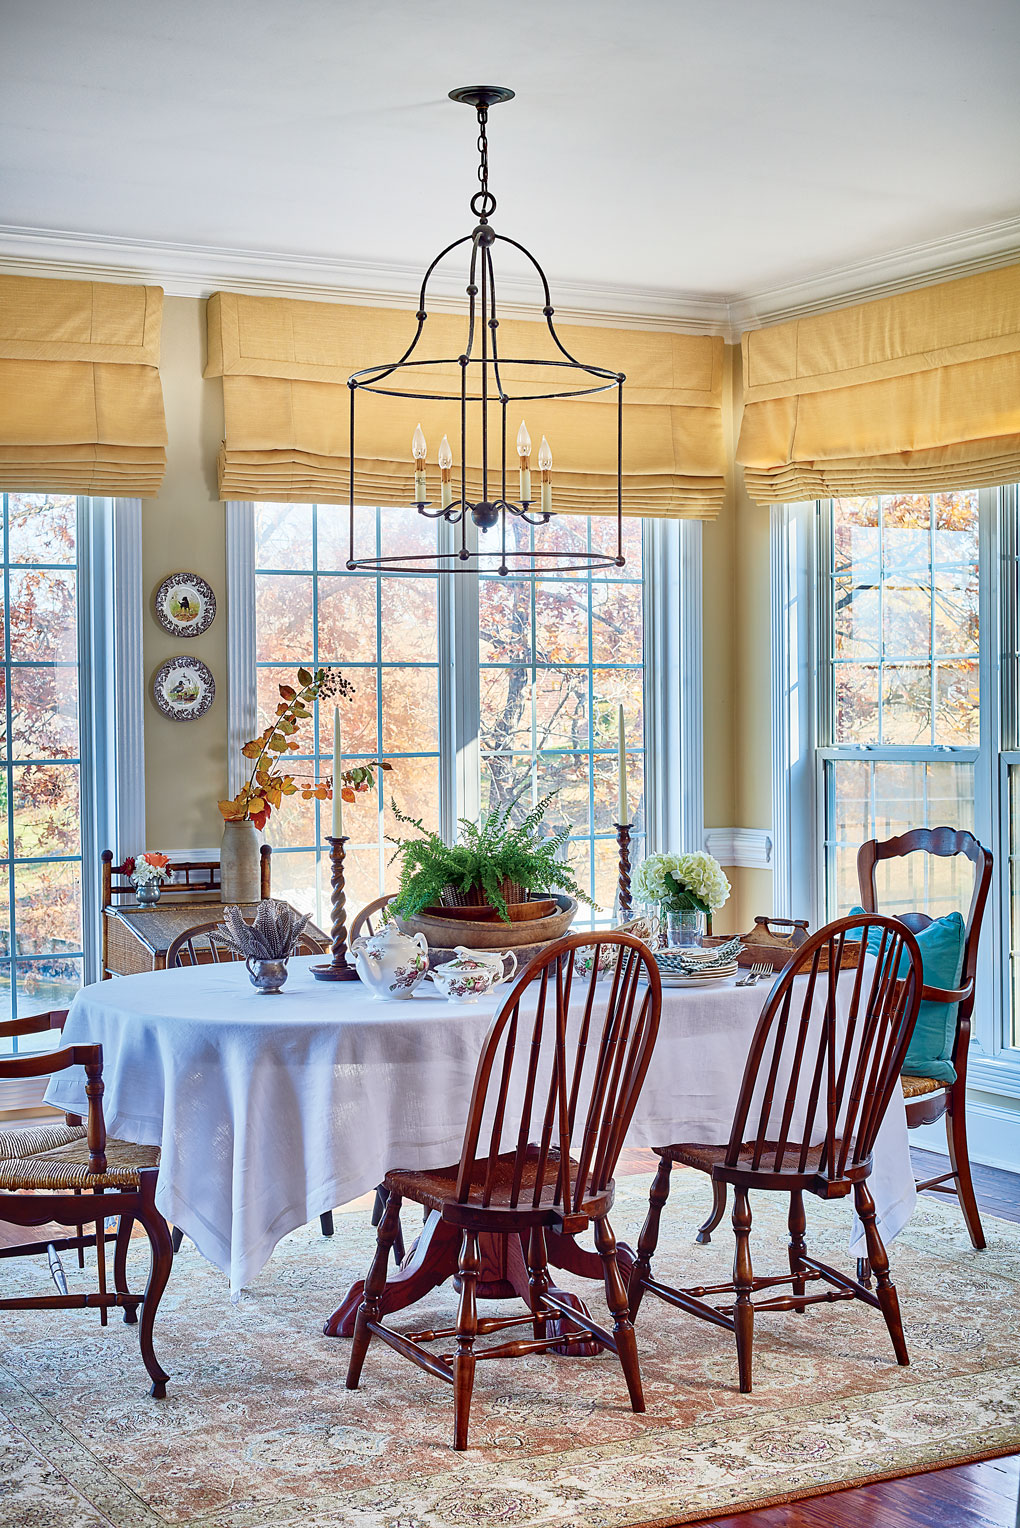 Breakfast nook surrounded by windows and a lake view with high back wooden chairs and light yellow walls and window coverings.